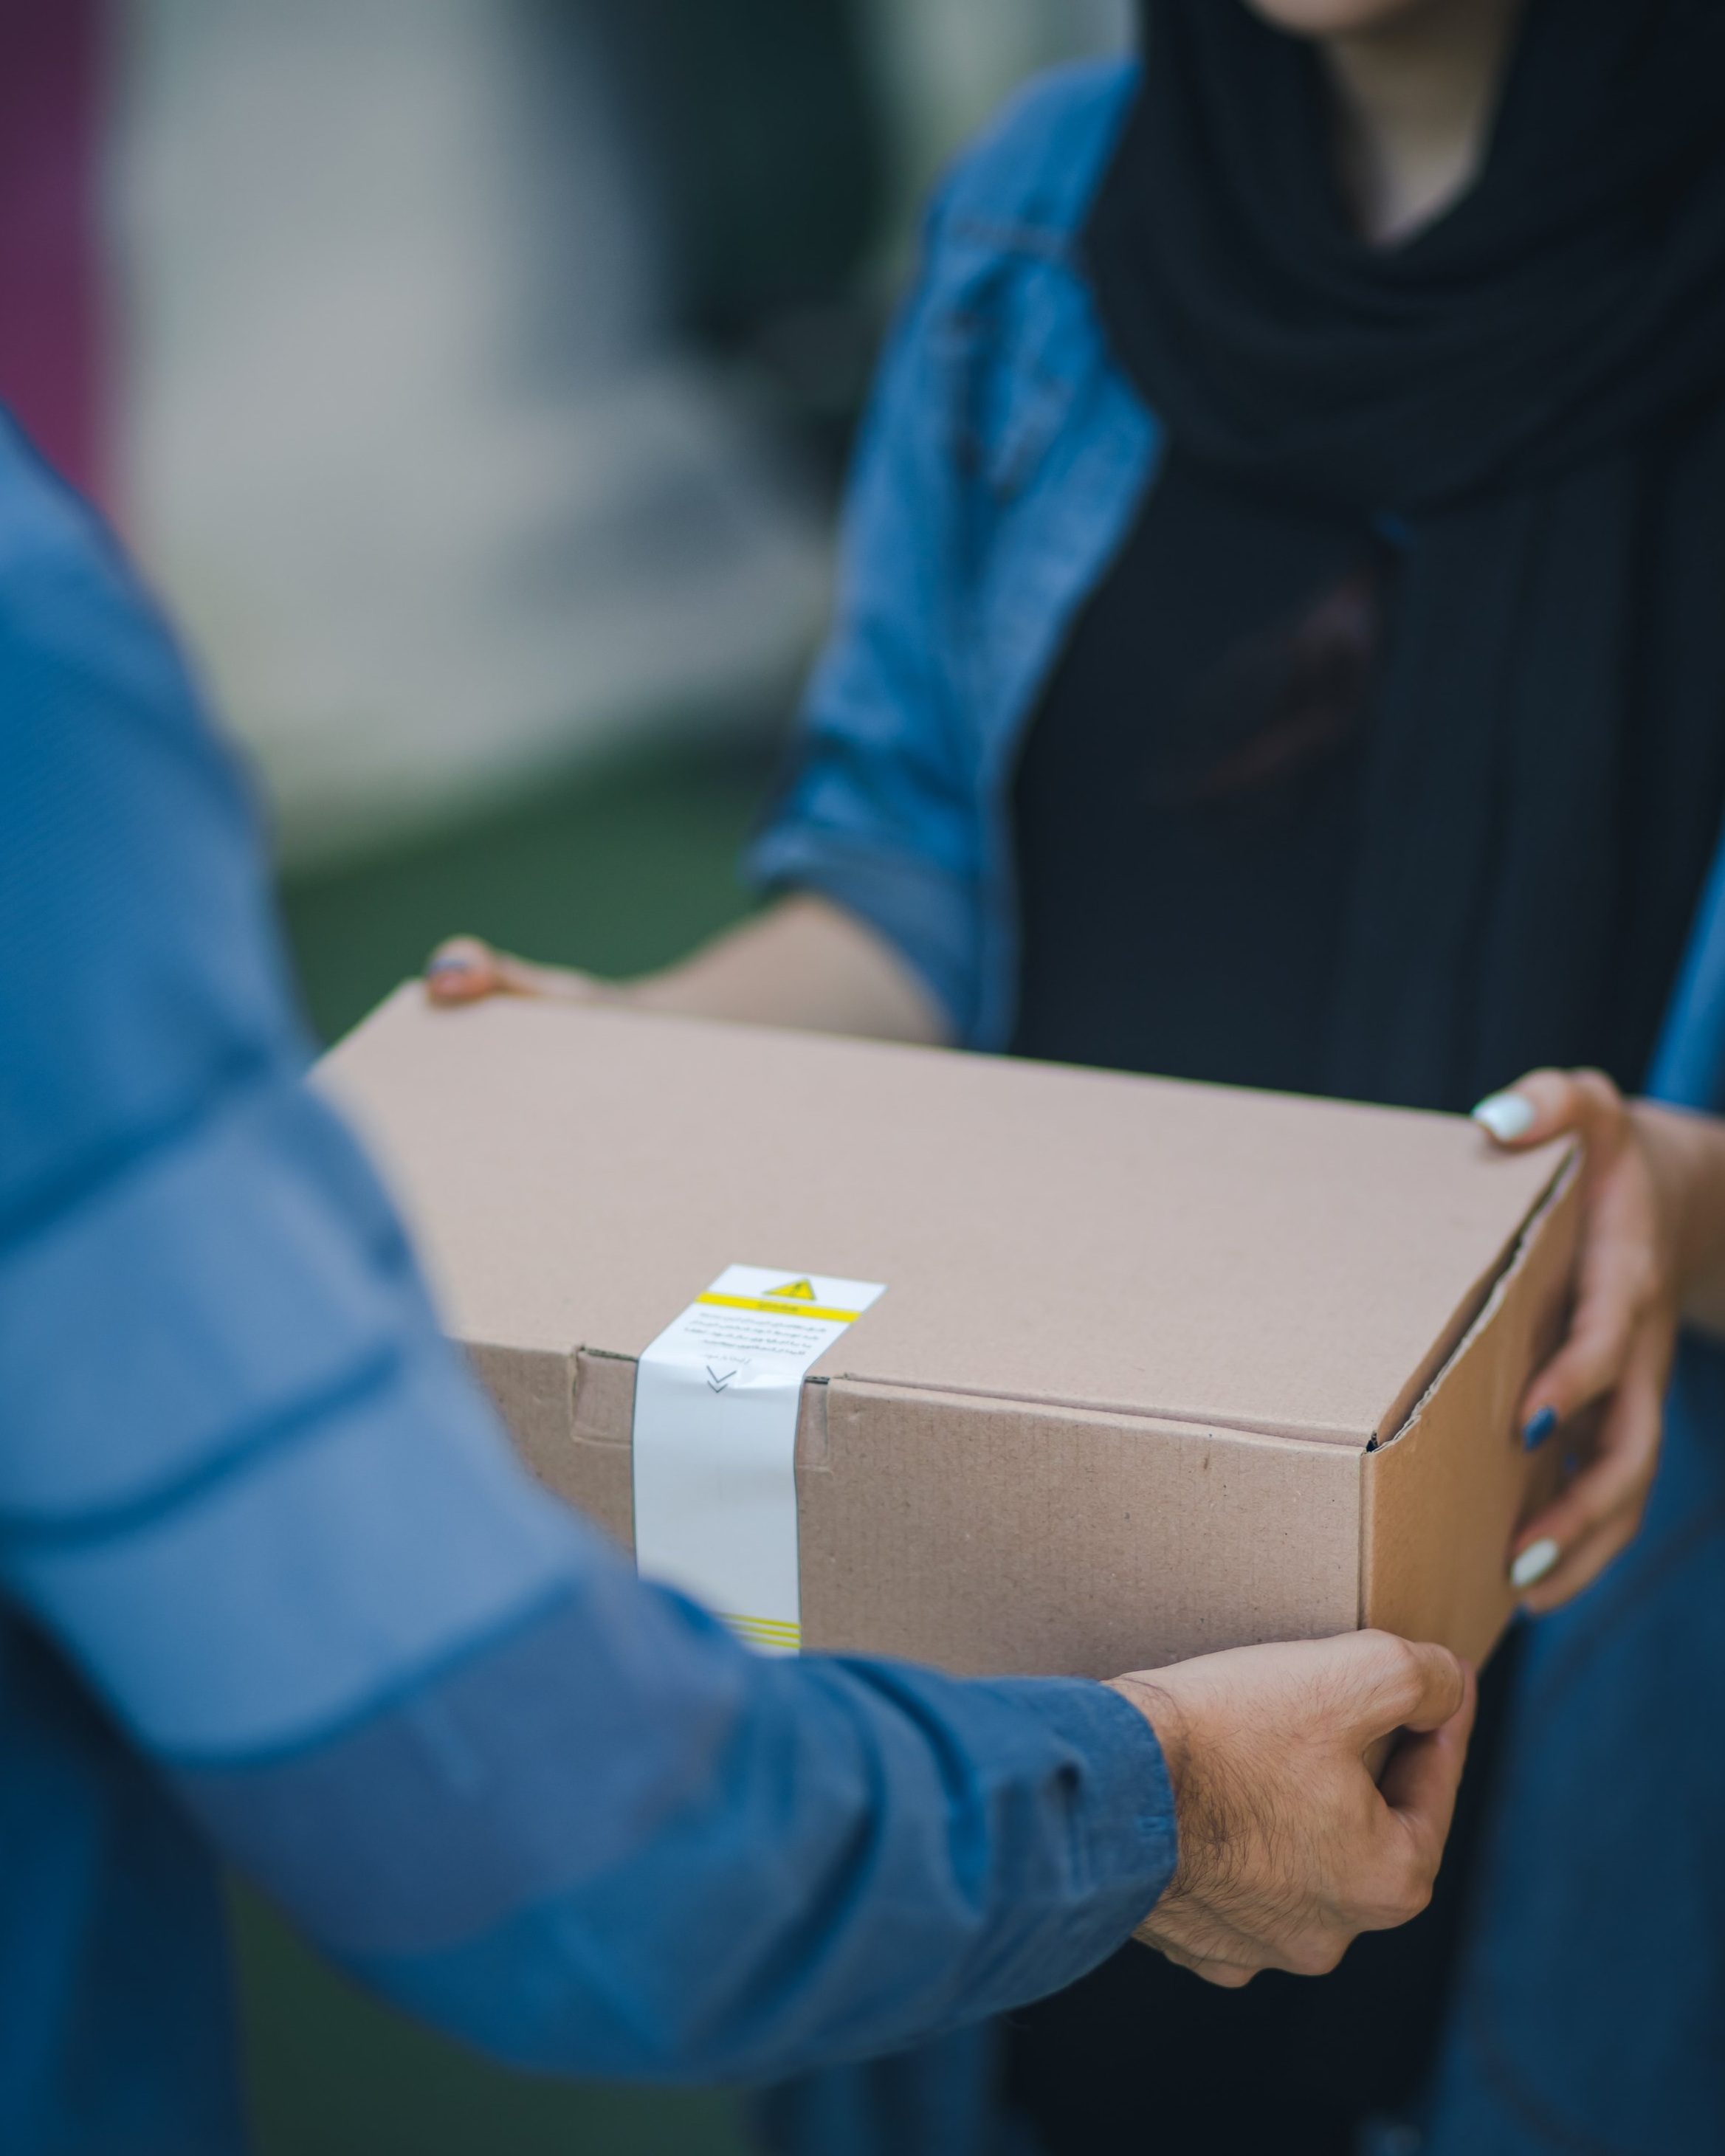 UConn's Student Health and Wellness introduce gloveBOX, a free condom delivery service for on-campus students.  Photo by    RoseBox رز باکس    on    Unsplash